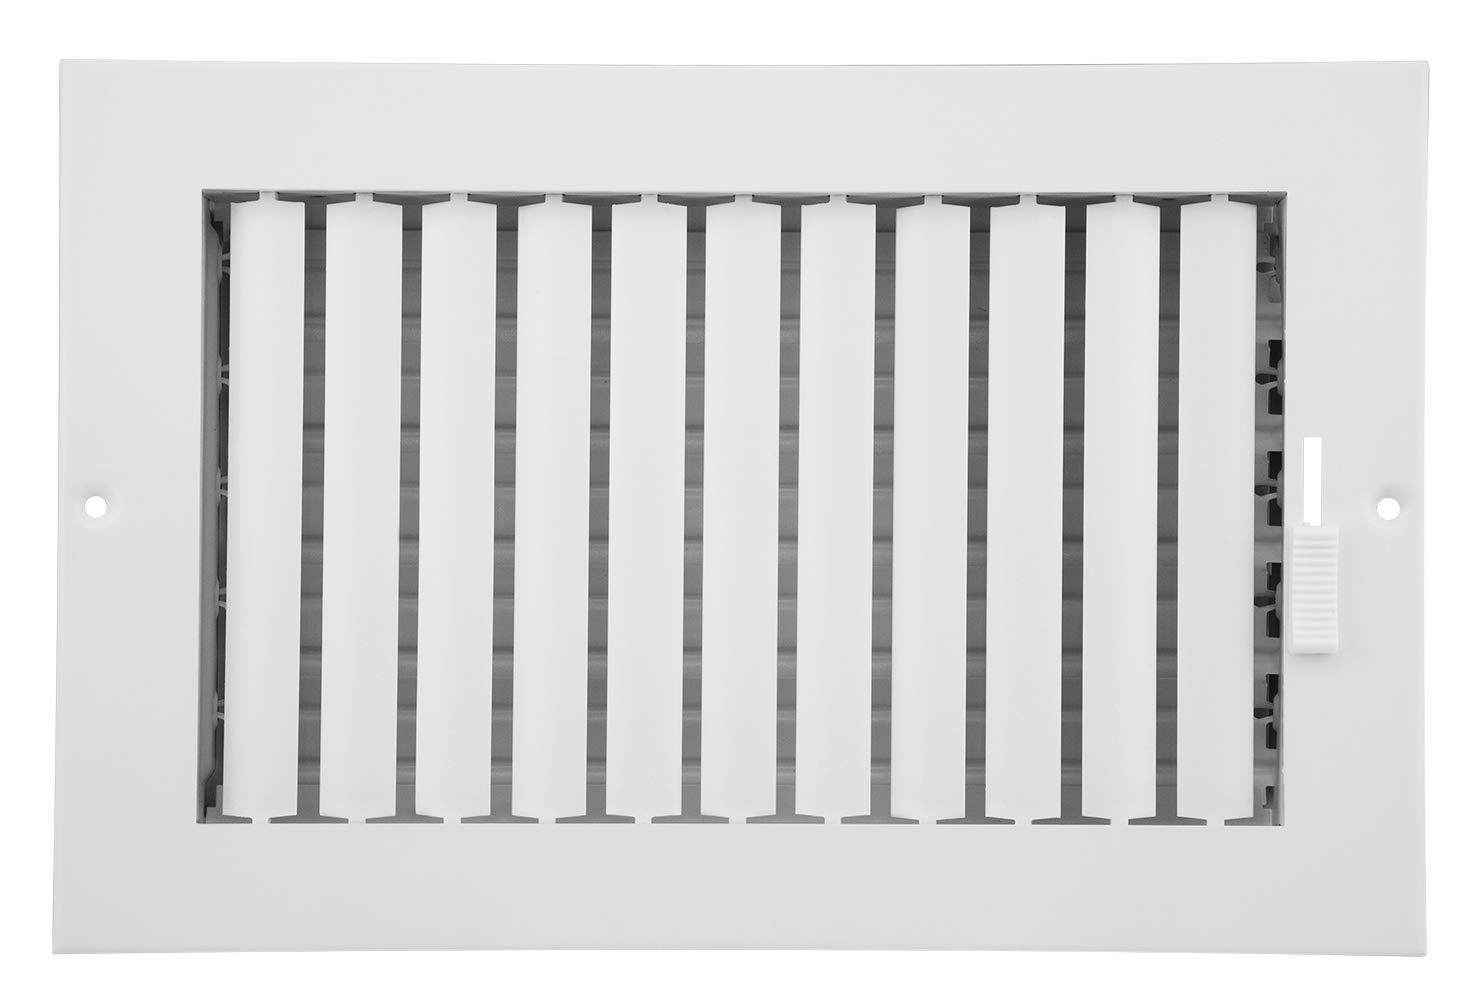 Accord ABSWWHA106 Sidewall/Ceiling Register with 1-Way Adjustable Design, 10-Inch x 6-Inch(Duct Opening Measurements), White